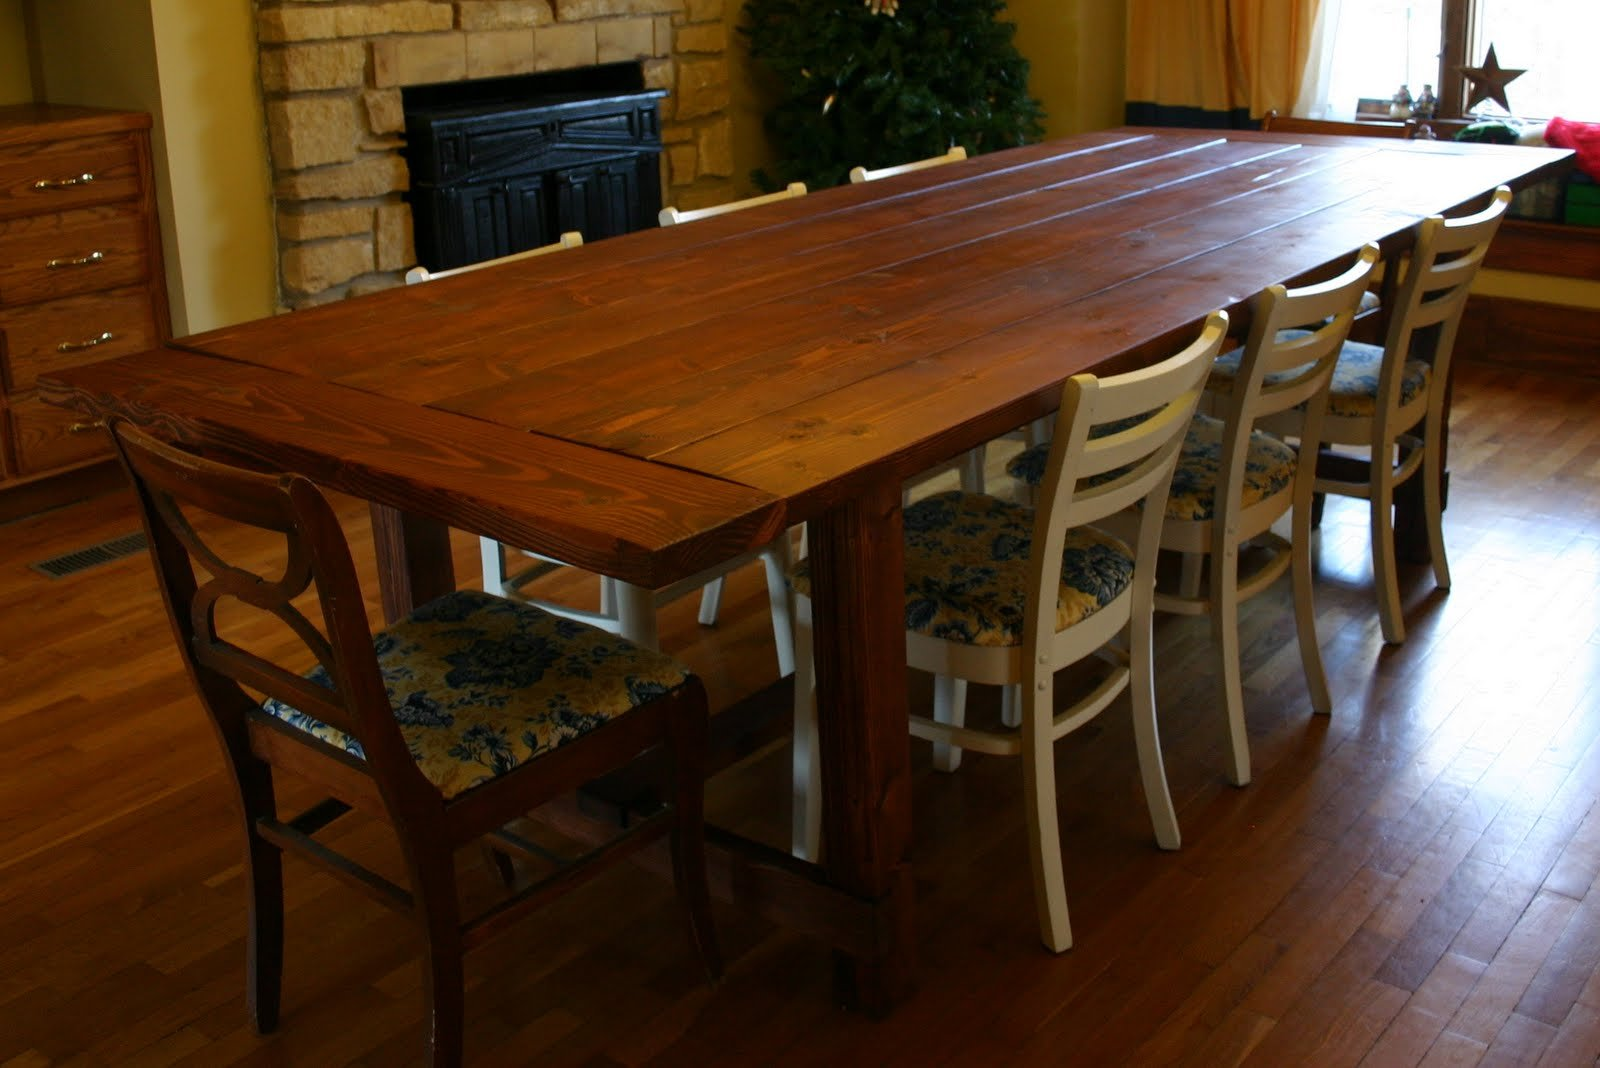 German Jello Salad: Rustic Dining Table I Built from Free ...